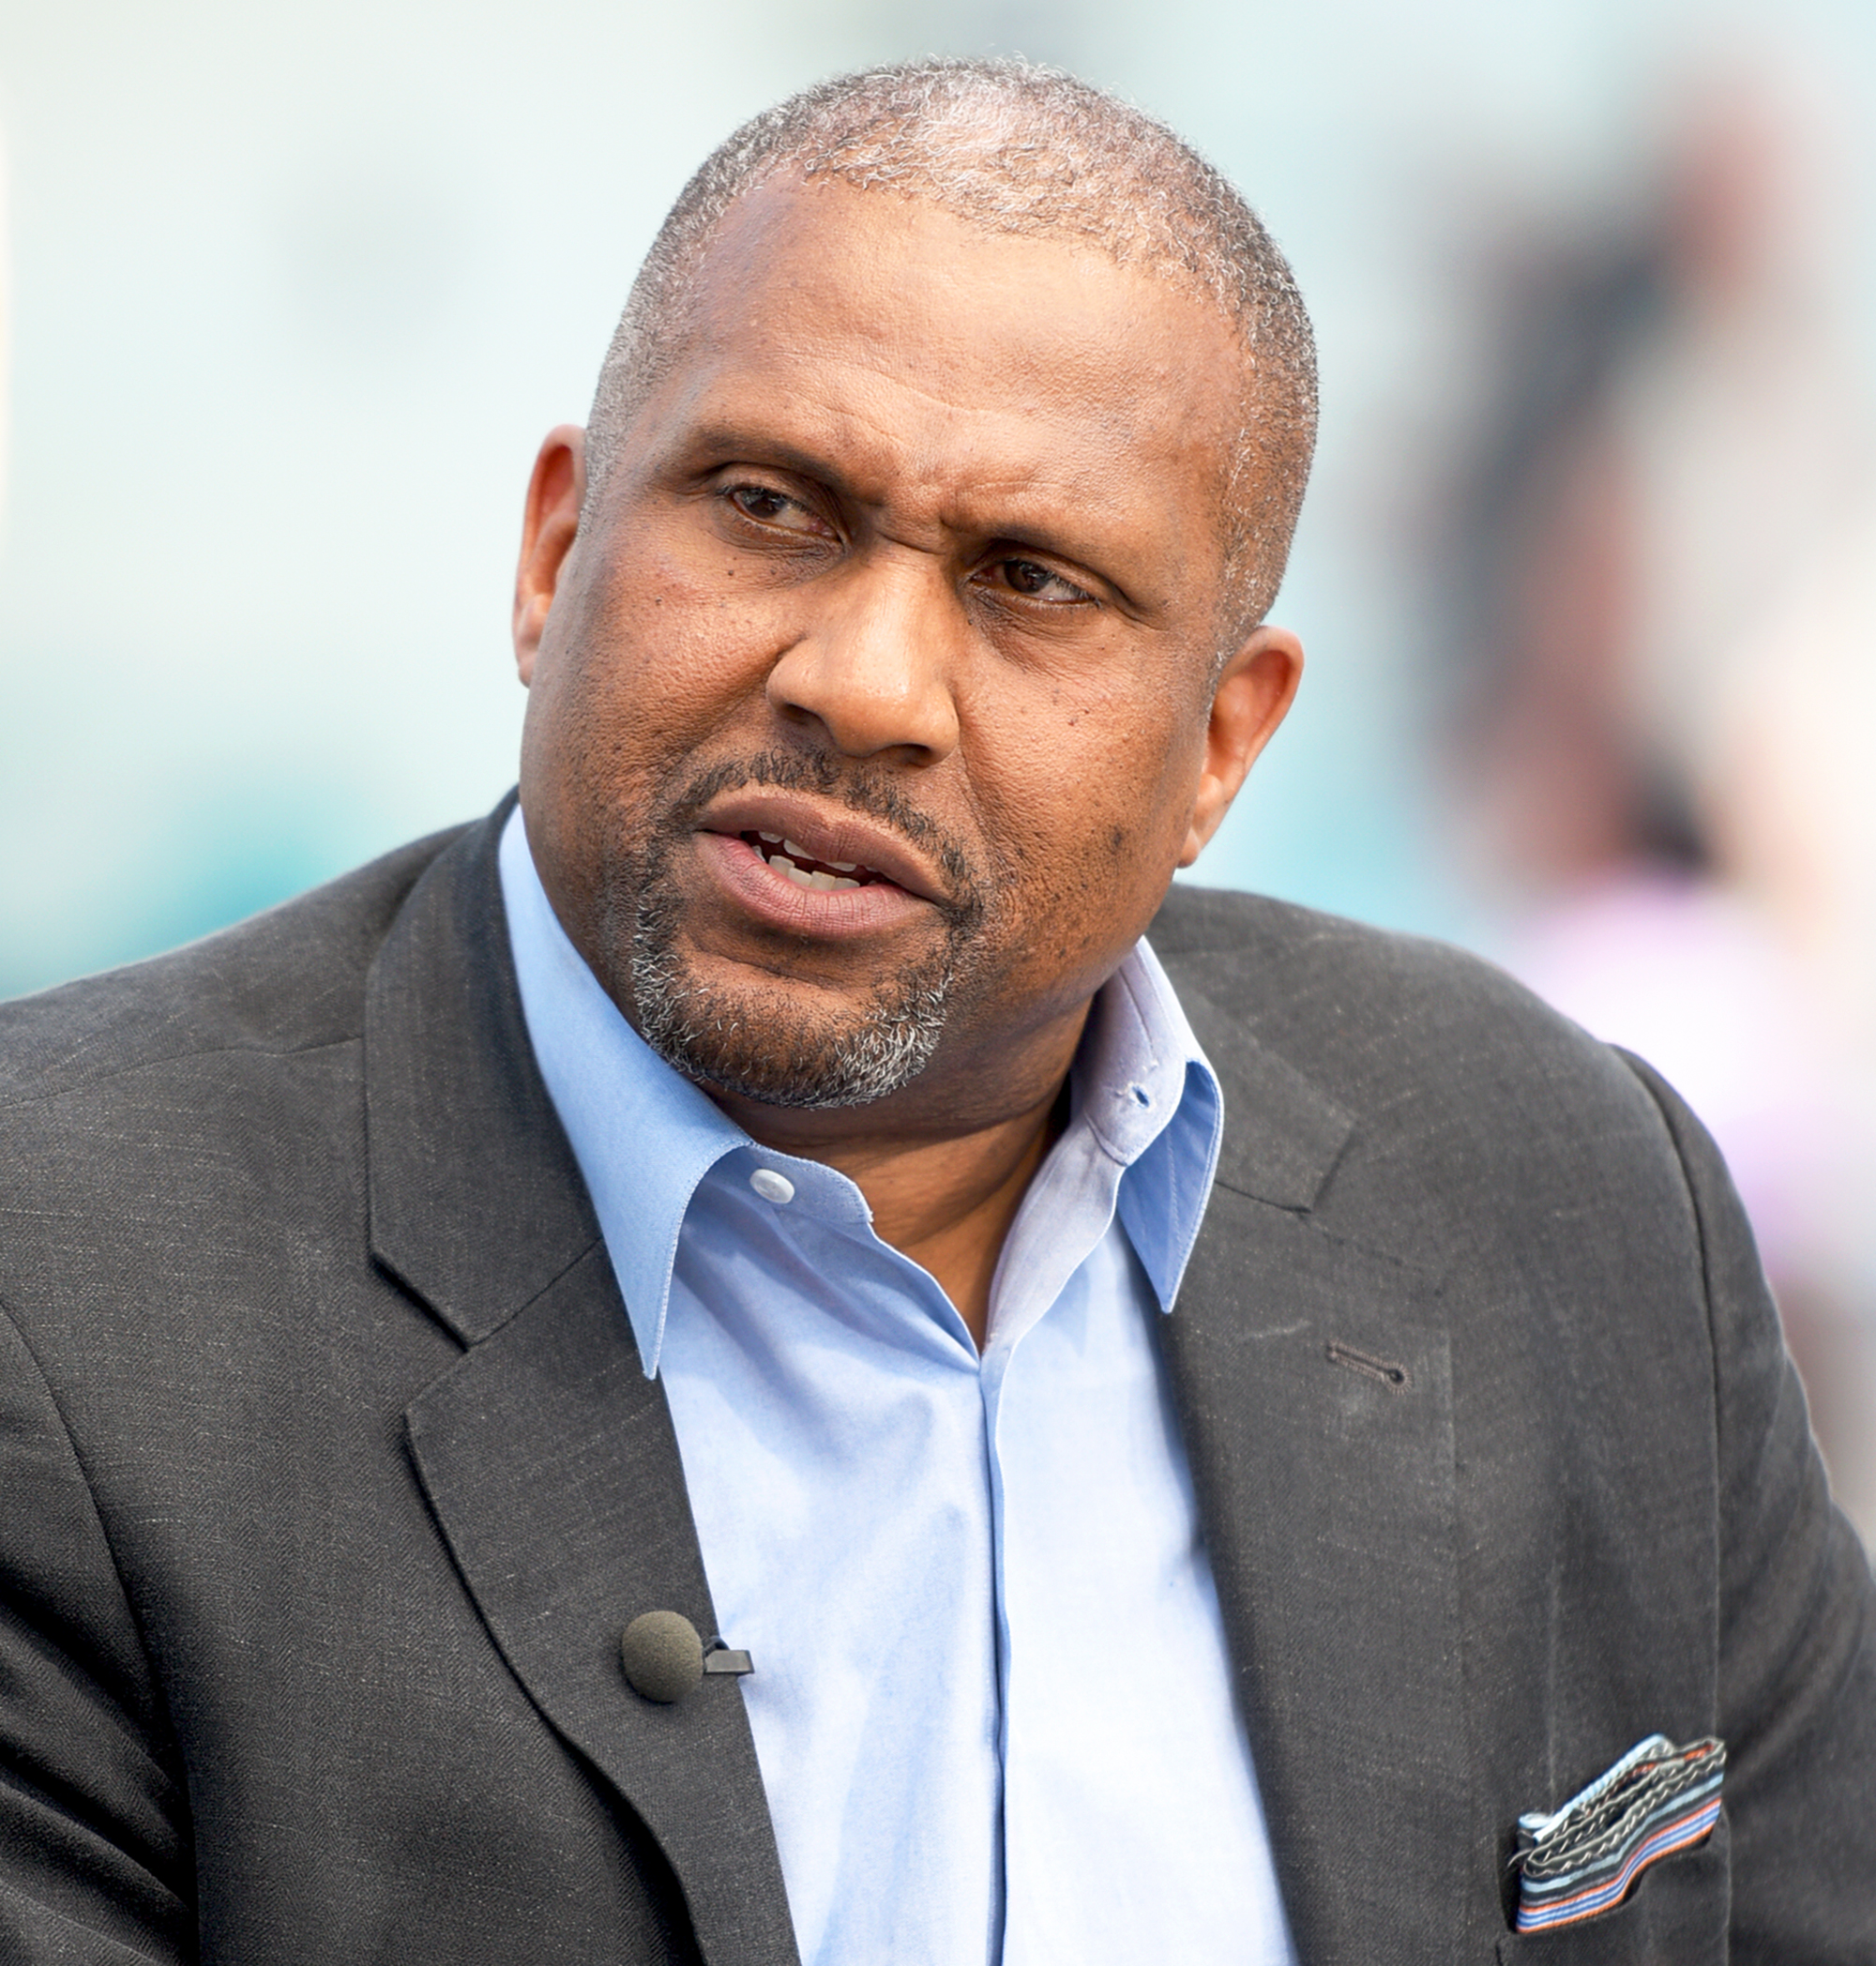 Tavis Smiley Sues PBS Fired Me Over 'Trumped Up' Sexual Harassment Claims